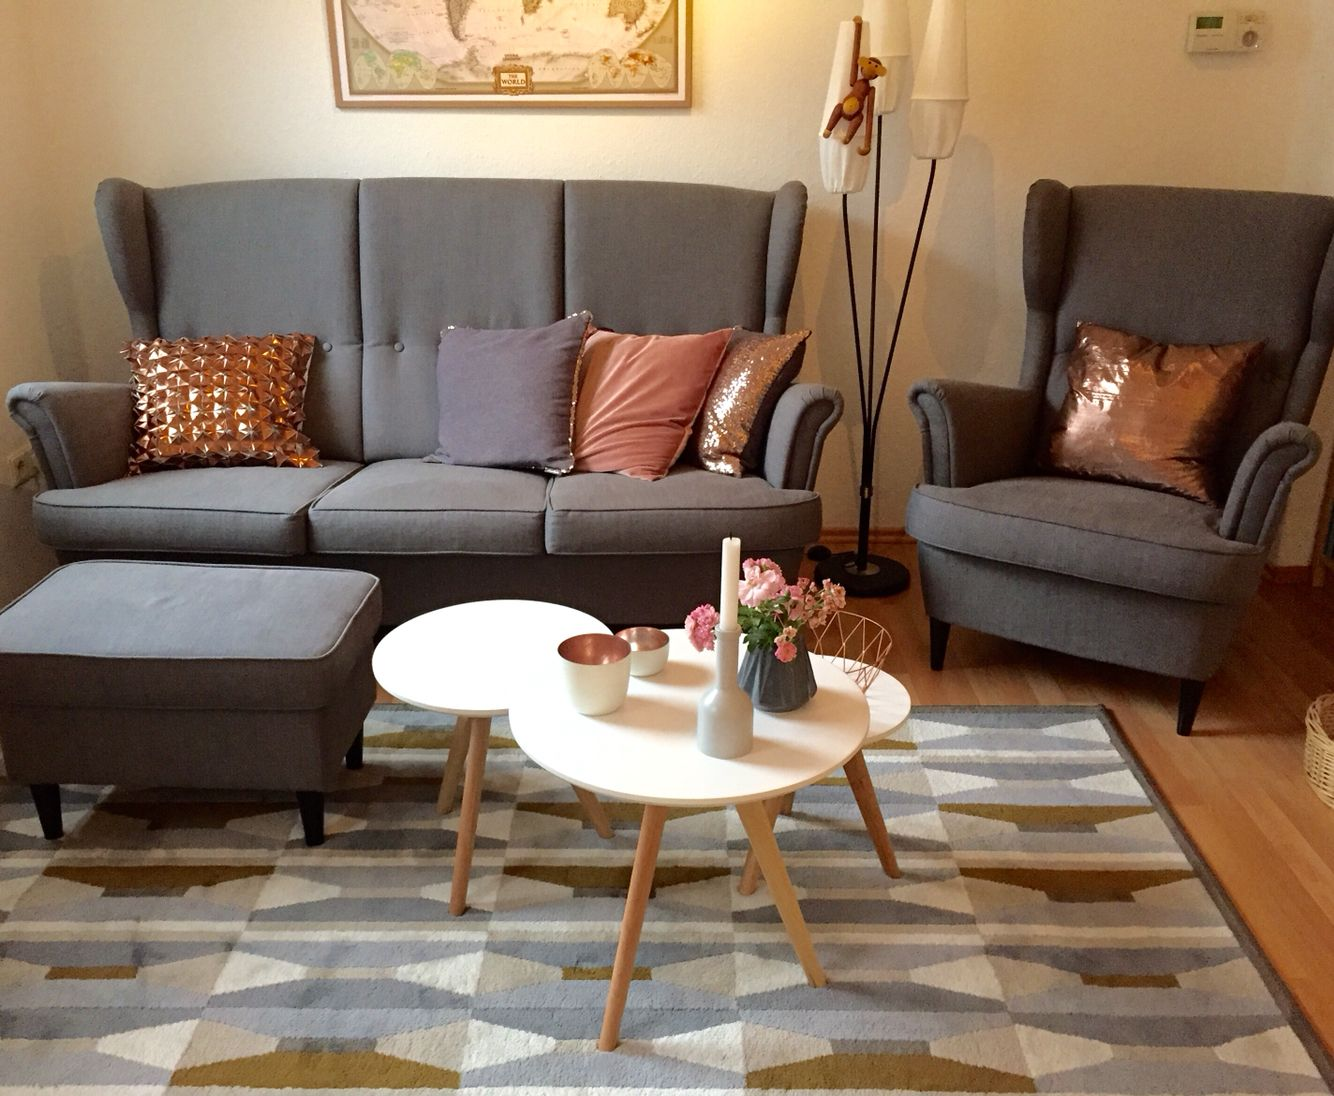 Mid century modern living room with IKEA Strandmon Sofa and copper